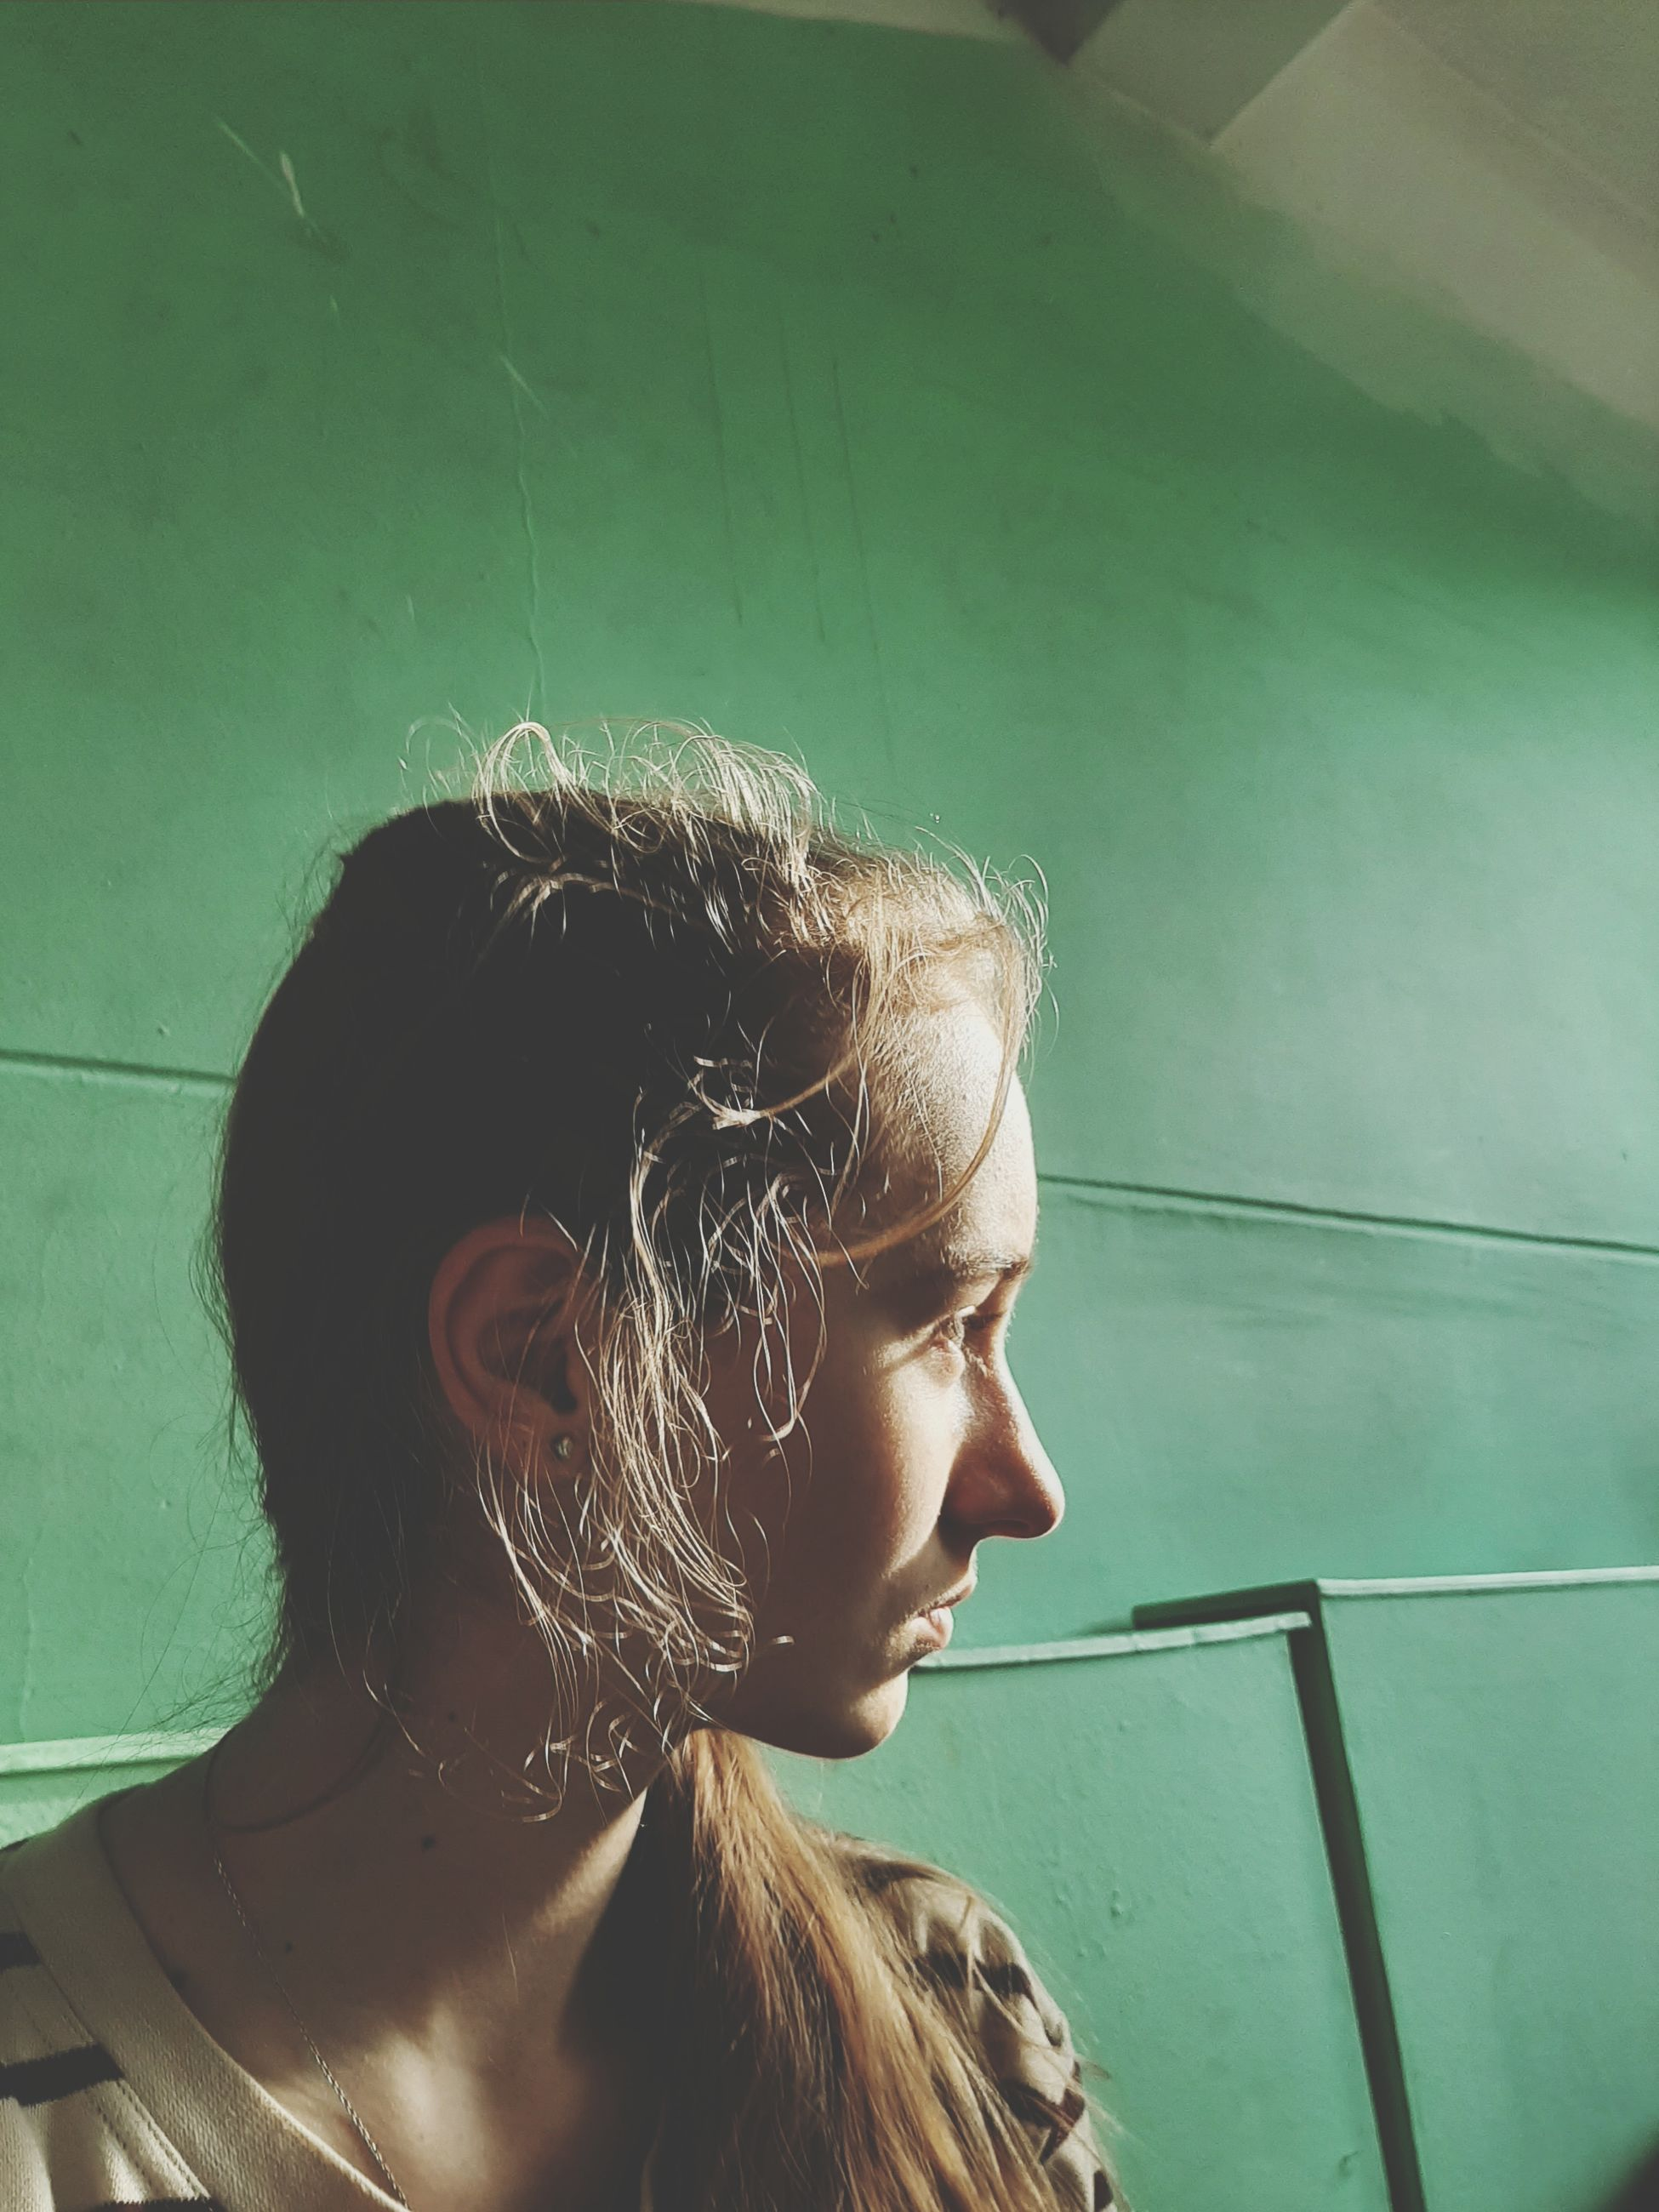 one person, headshot, real people, looking, hair, portrait, lifestyles, young adult, leisure activity, wall - building feature, looking away, young women, hairstyle, side view, long hair, indoors, day, women, contemplation, teenager, profile view